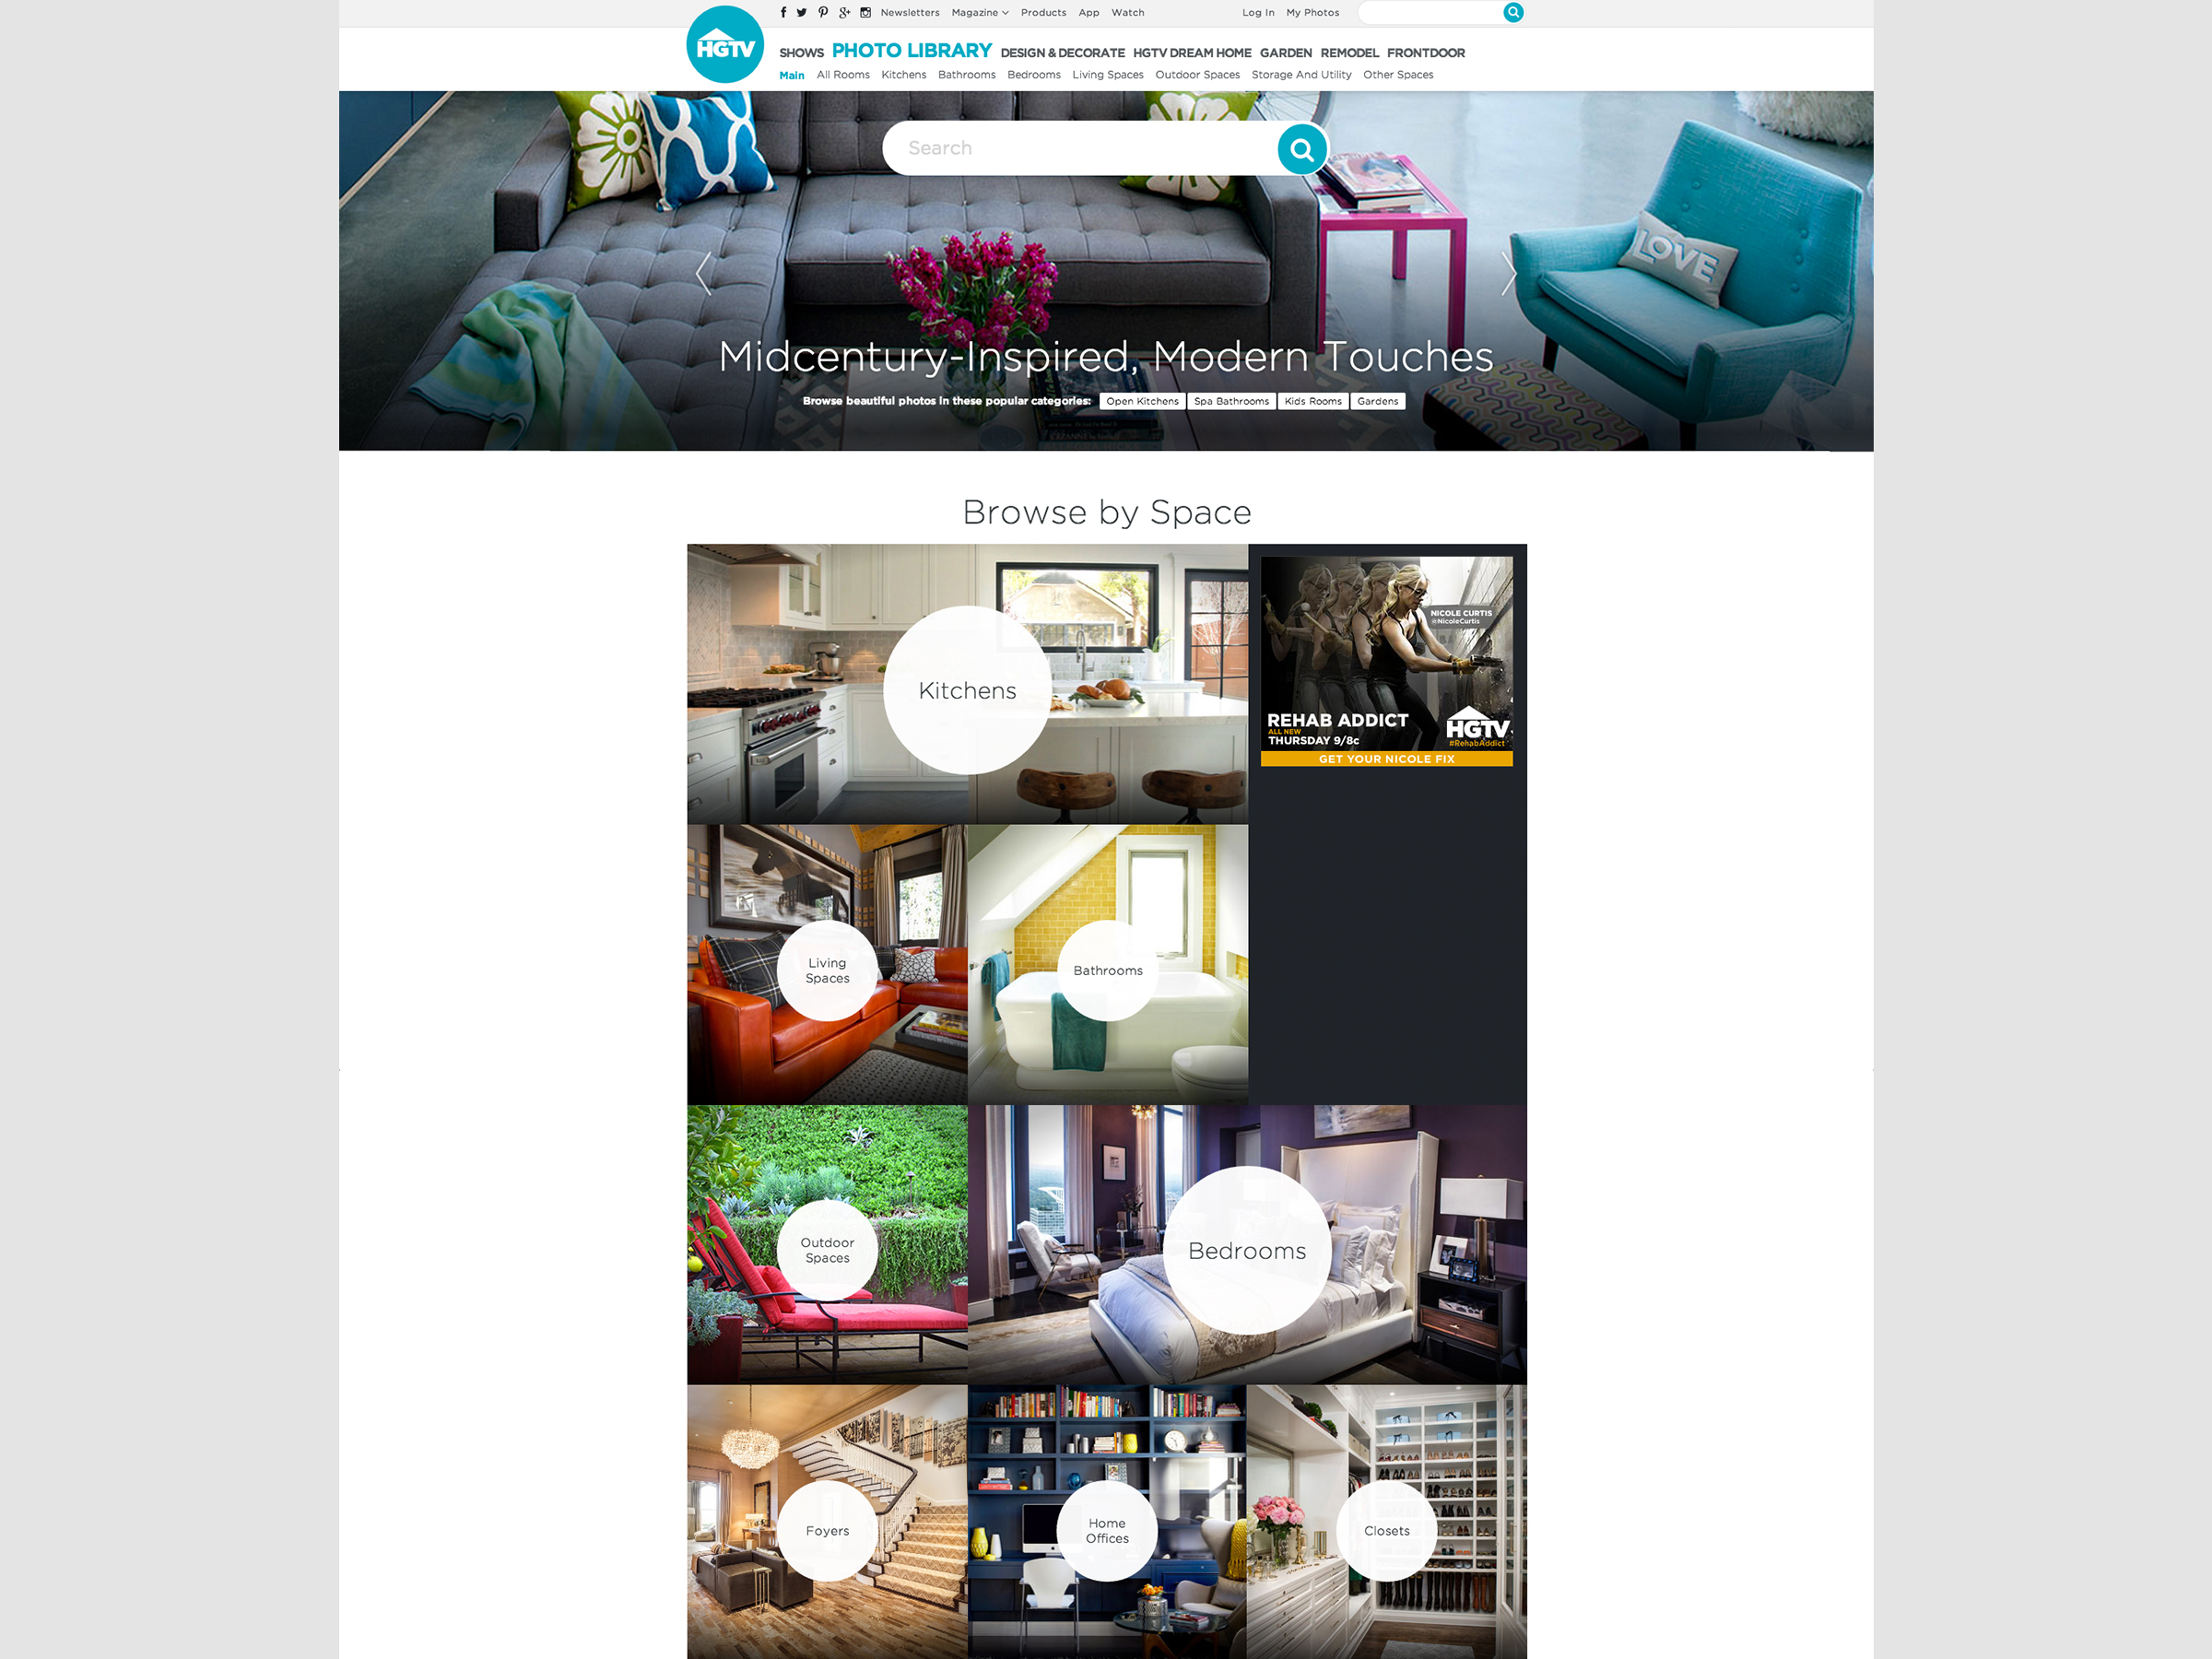 HGTV Unveils a Reimagined HGTV.com with Expanded Photo Liry of ... on interior design app, hgtv property brothers kitchen designs, urban design app, silhouette design app,